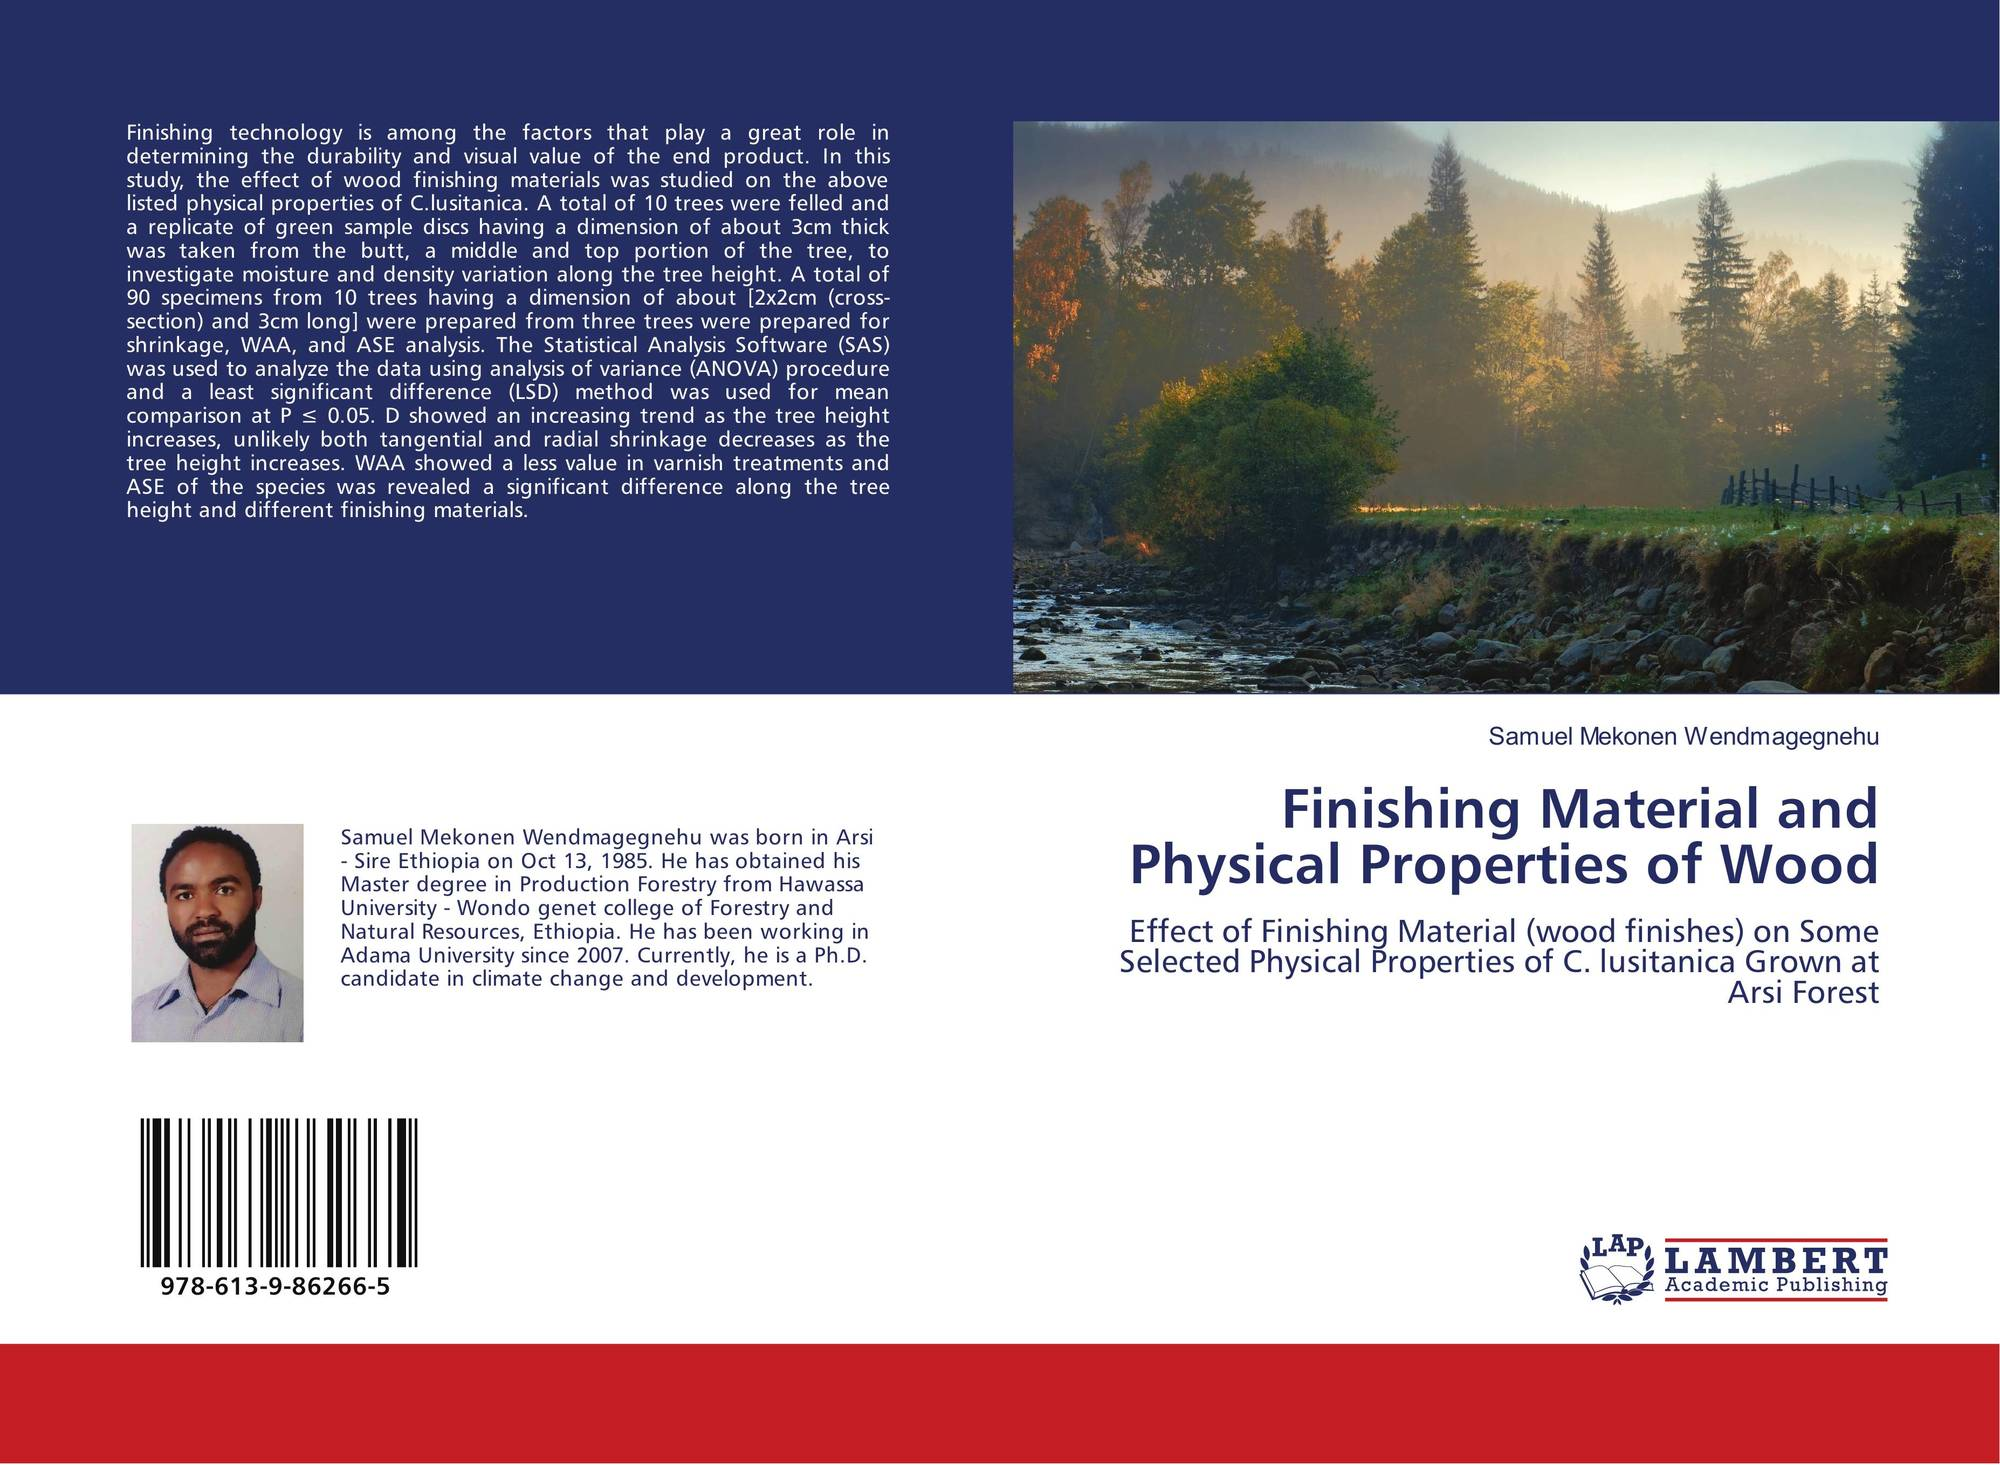 Finishing Material and Physical Properties of Wood, 978-613